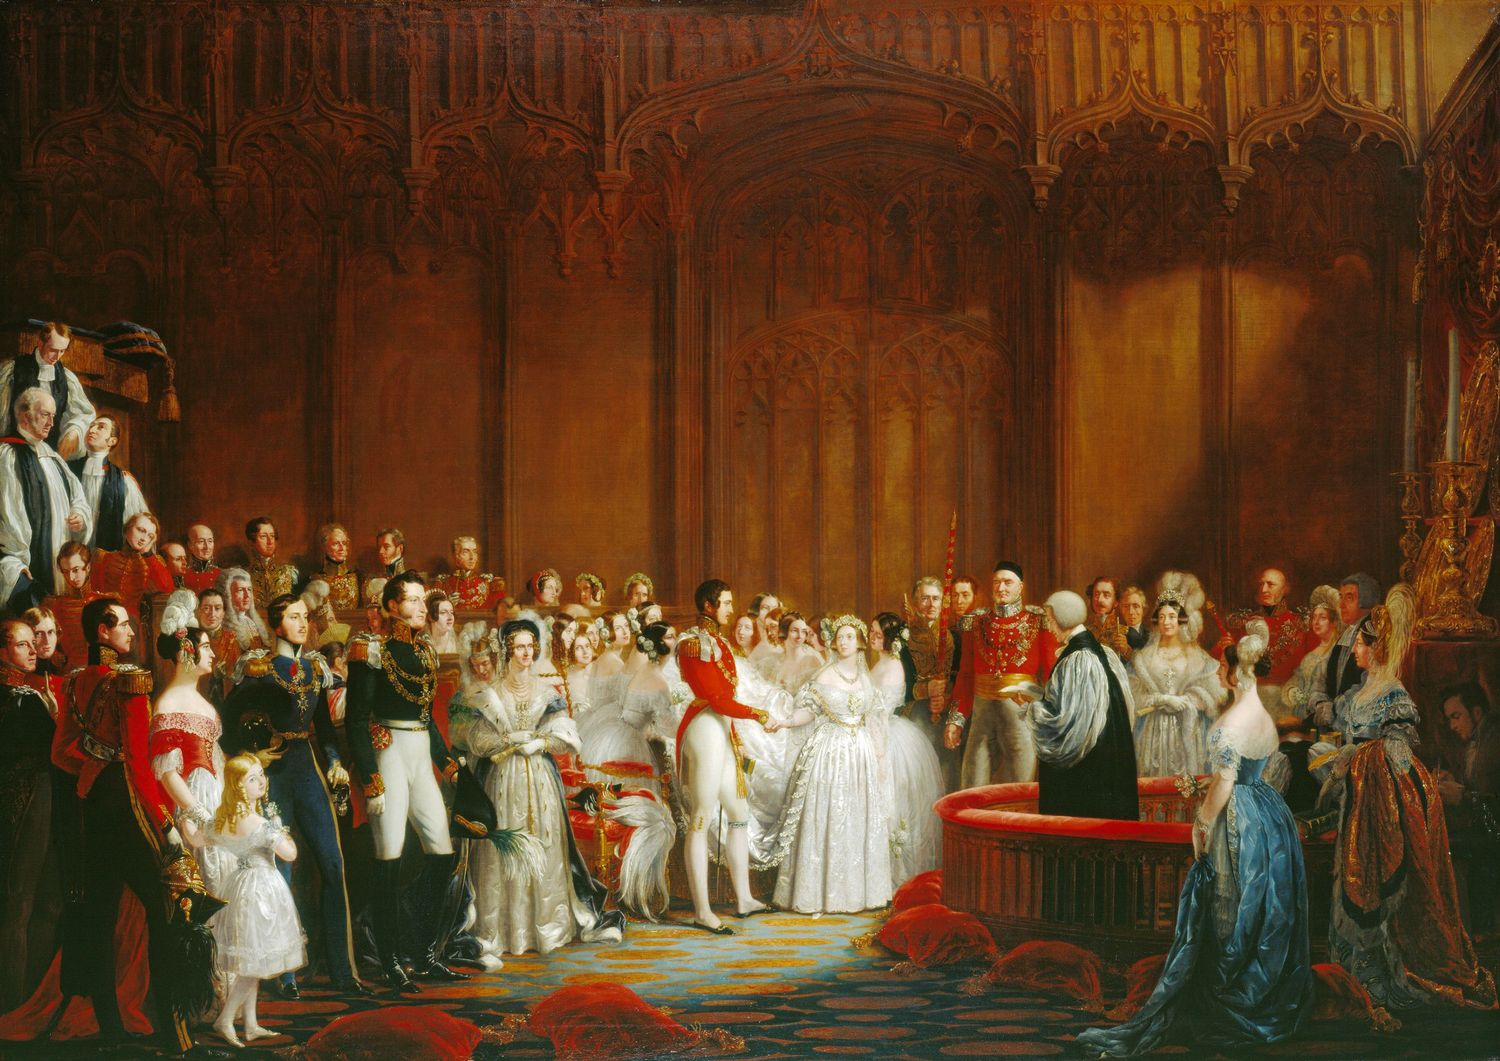 The Marriage of Queen Victoria, 10 February 1840 by George Hayter